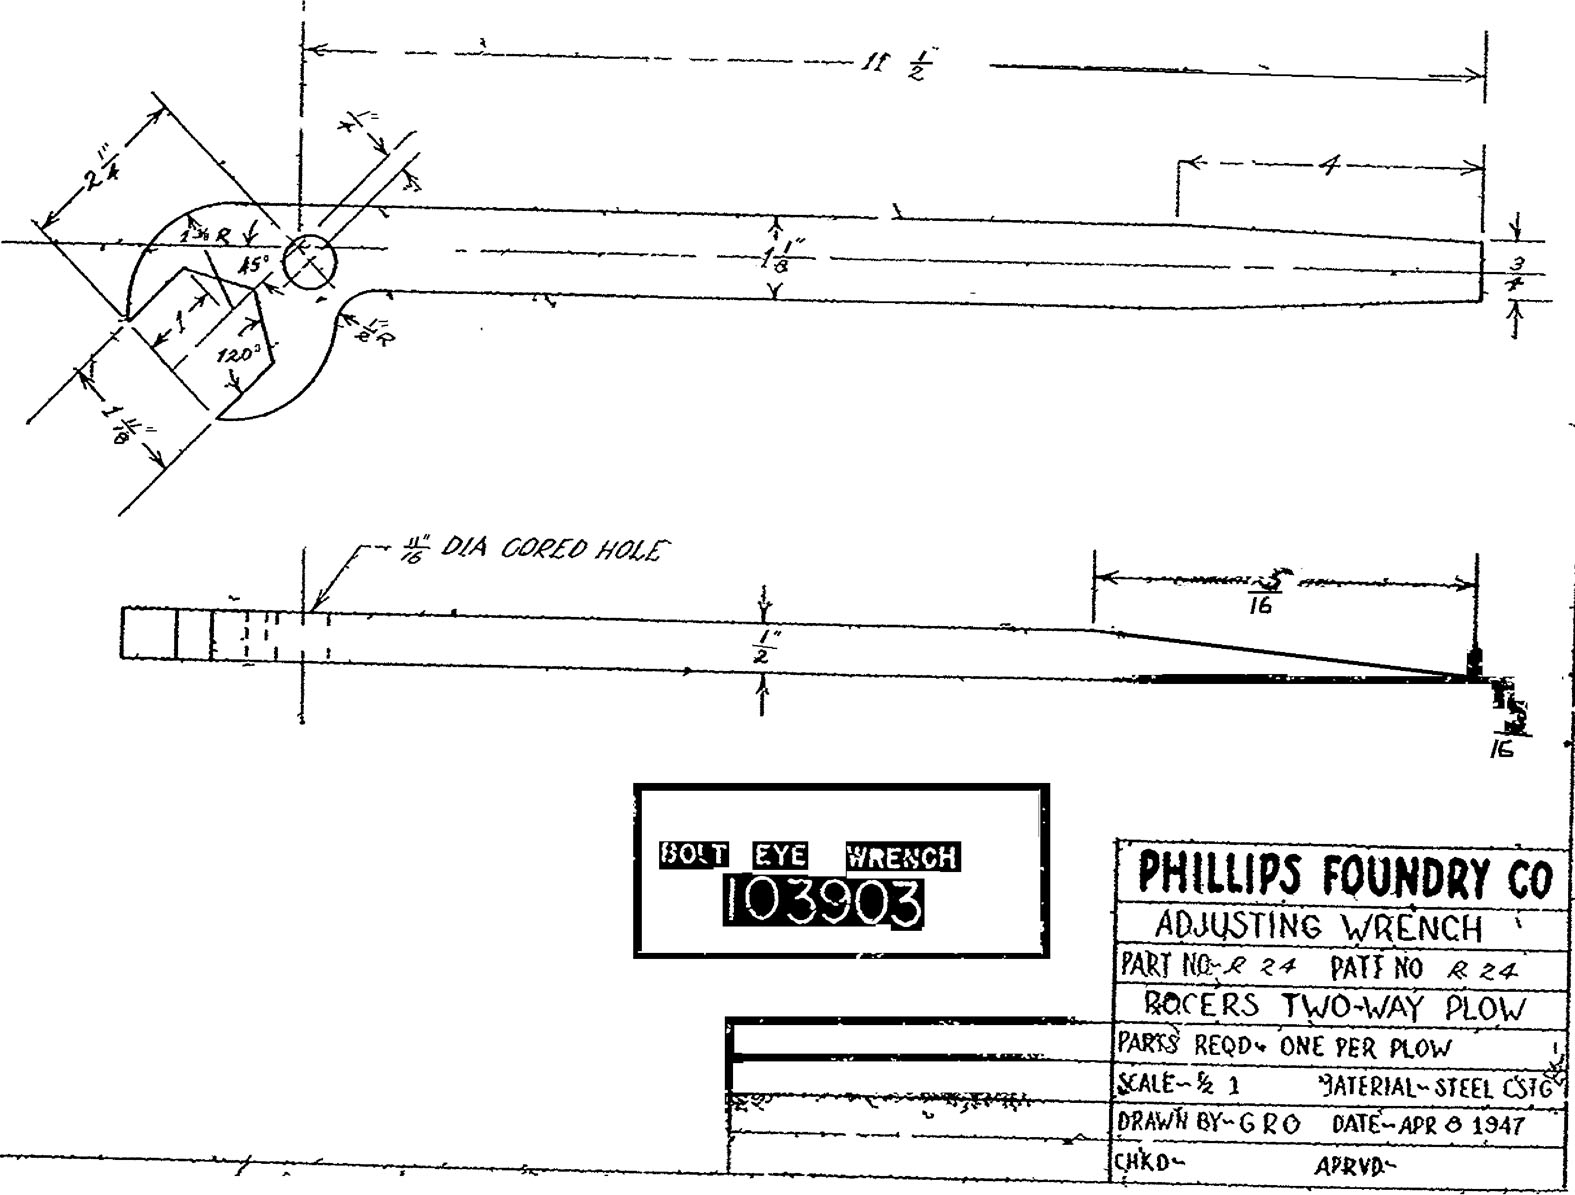 Dearborn 10 14 2 way plow blueprint for wrench